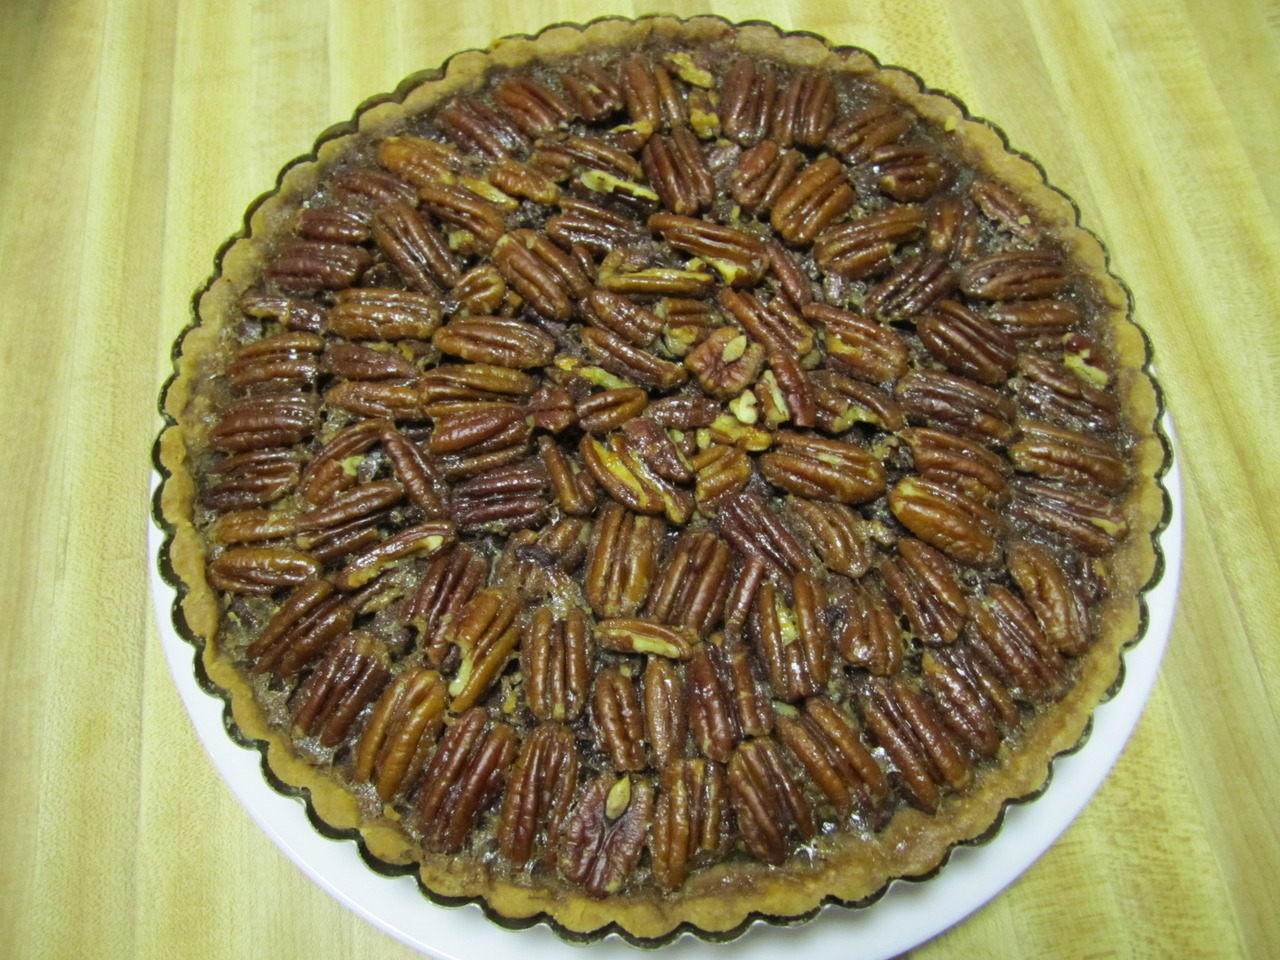 "foodisforeating:   Chocolate Pecan Pie: chopped pecans, brown sugar filling cut with some Kahlua, chopped chocolate, pâte sucrée crust.  Shown with a scoop of vanilla ice cream from Halo Farm (Trenton, NJ)  Traditionally, pecan pies contain corn syrup in the filling to give the dessert its signature chewy mouthfeel.  What corn syrup also imparts, though, is that cloying sweetness that many like myself just can't get behind.  This particular pie, however, differentiates itself from these other pies in that it not only uses brown sugar instead of corn syrup but also that it cuts the sweetness further with some chocolate and a little liquor (I used Kahlua since there was no cognac on hand).  The results were good, even though I made some errors which affected the final result. That means that I'll have to be doing some more pecan pie ""research,"" but I'm sure I can easily find some guinea pigs to test my food…"